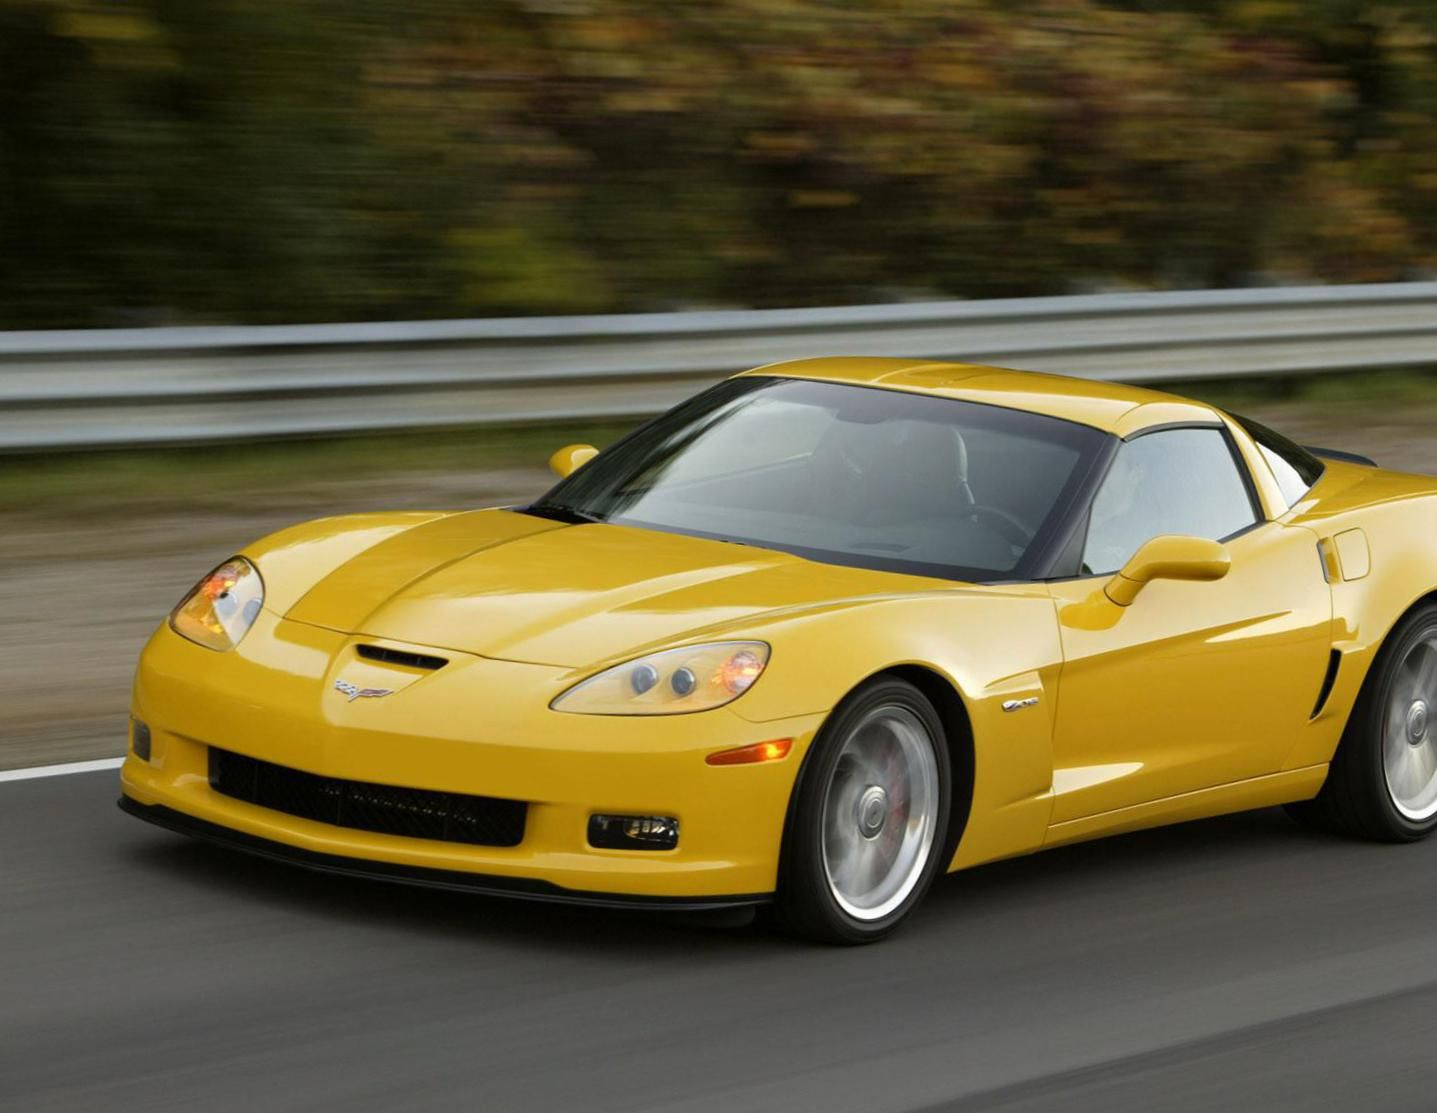 Chevrolet Corvette Photos And Specs. Photo: Corvette Chevrolet Usa And 26  Perfect Photos Of Chevrolet Corvette